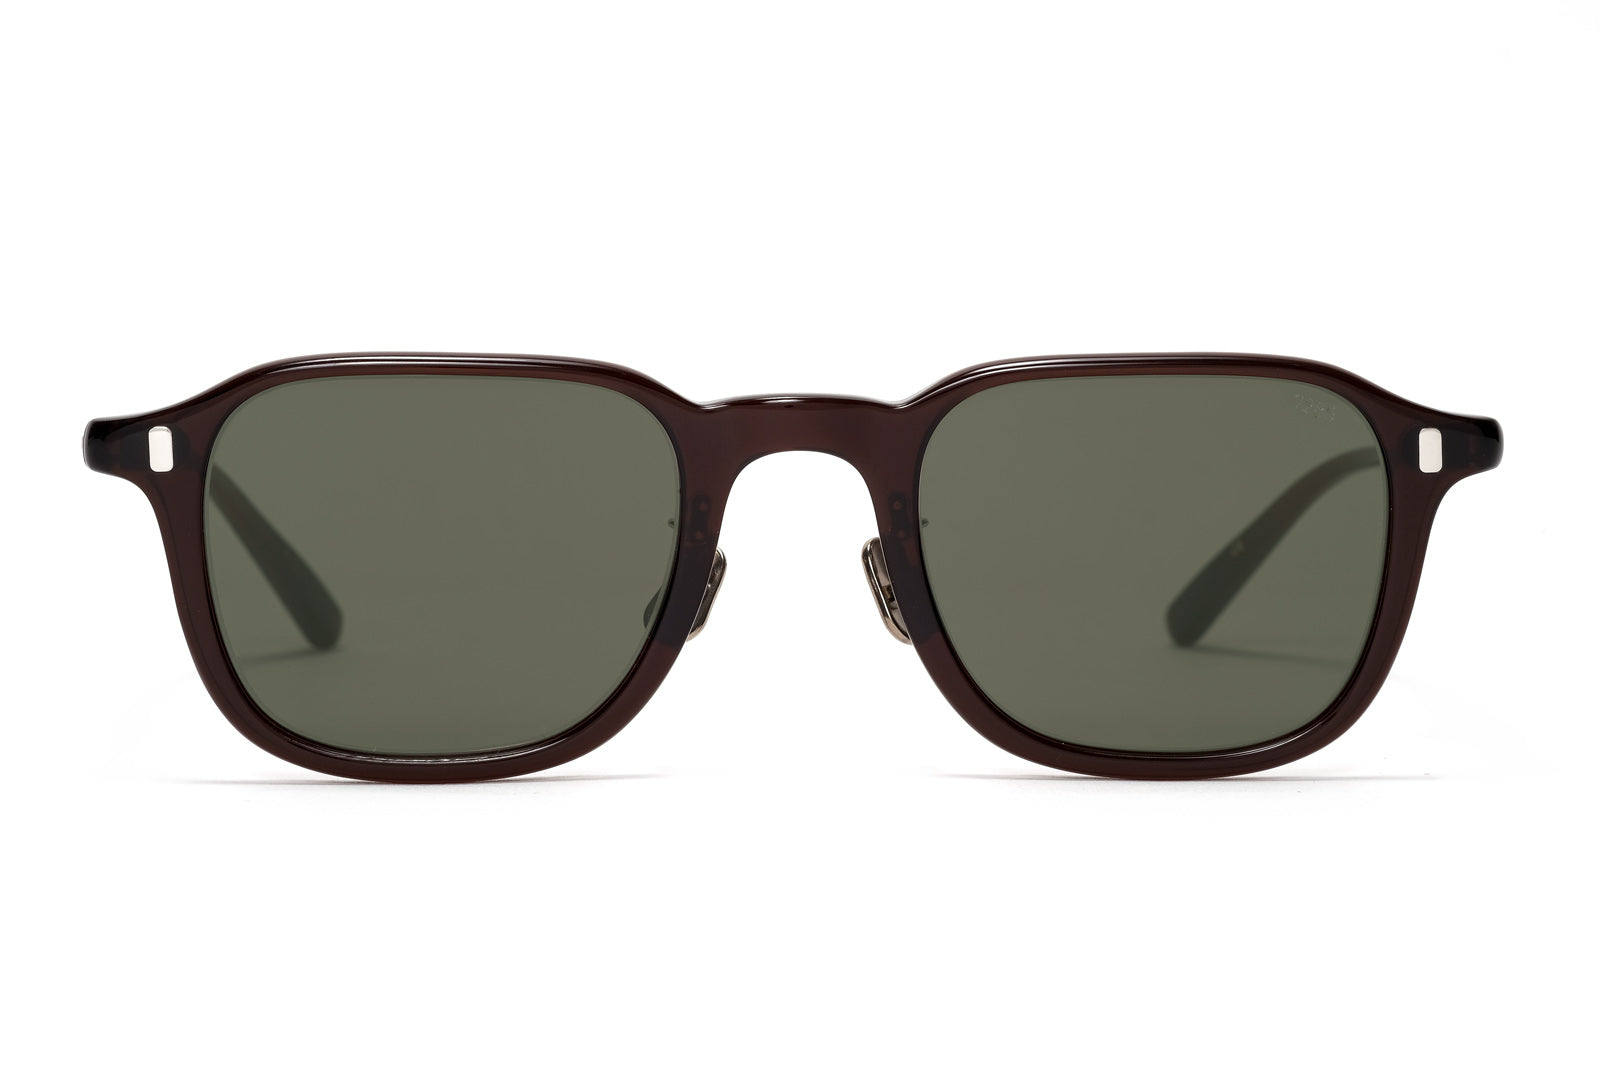 eyevan 325 brown sunglasses miami